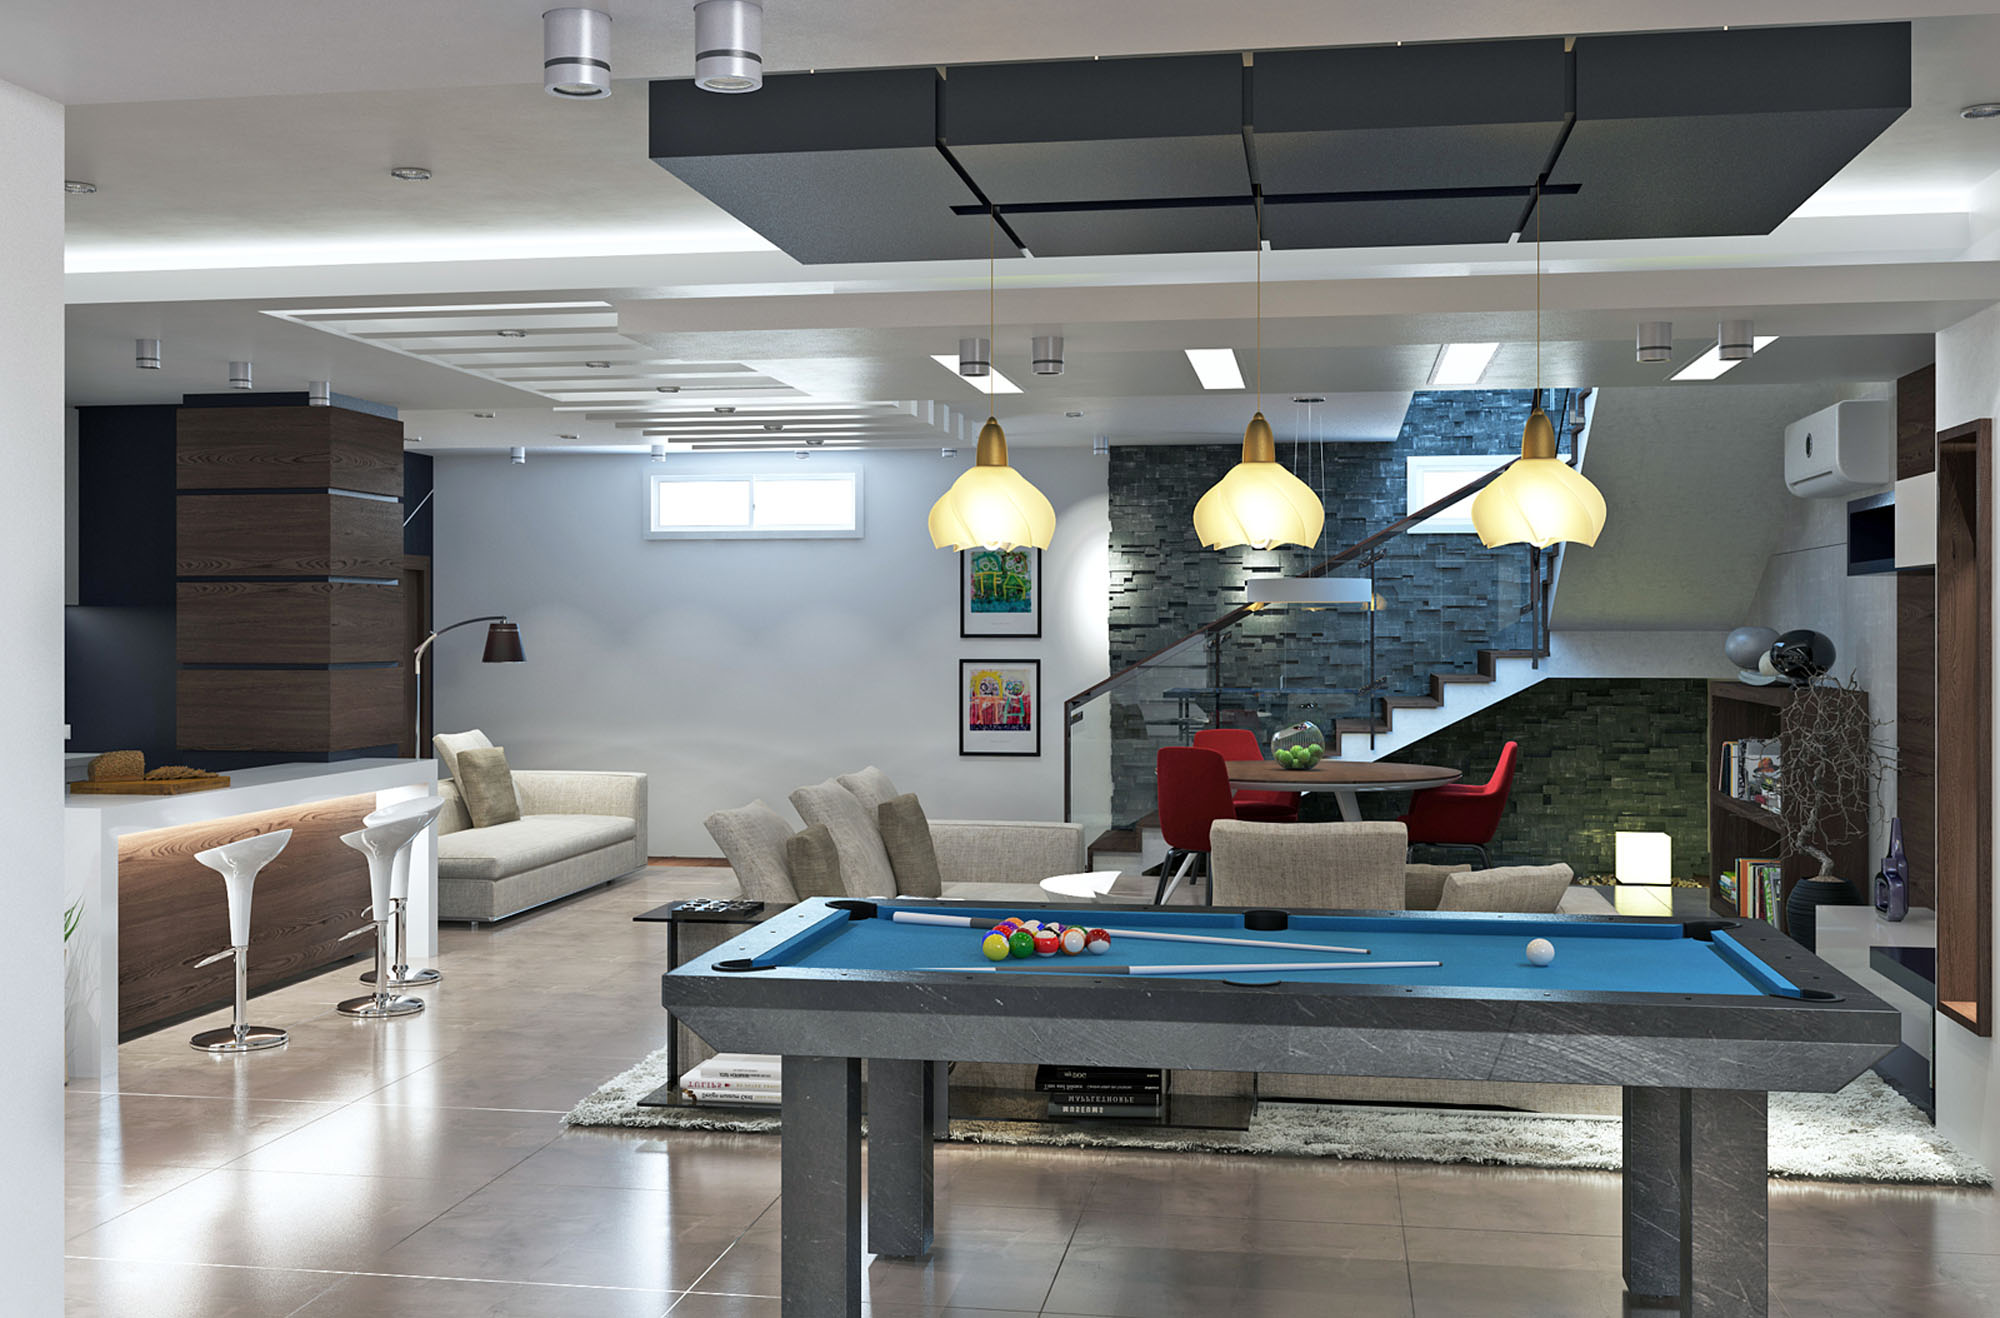 Pool Table, Living Space, Revamped Interior in Beverly Hills